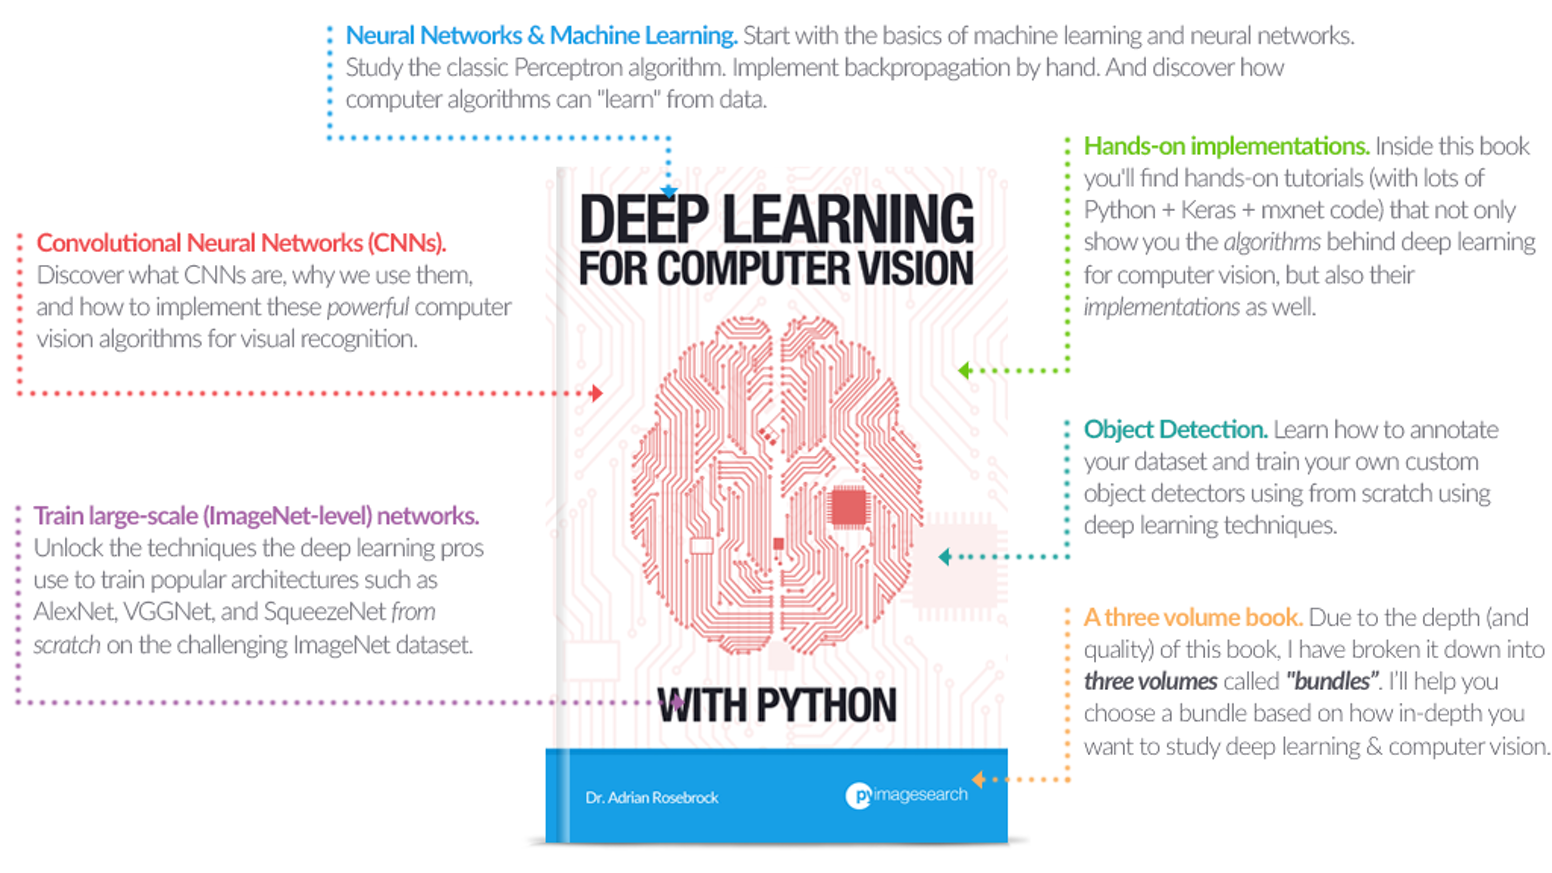 Struggling to get started with neural networks & deep learning for computer  vision? My new